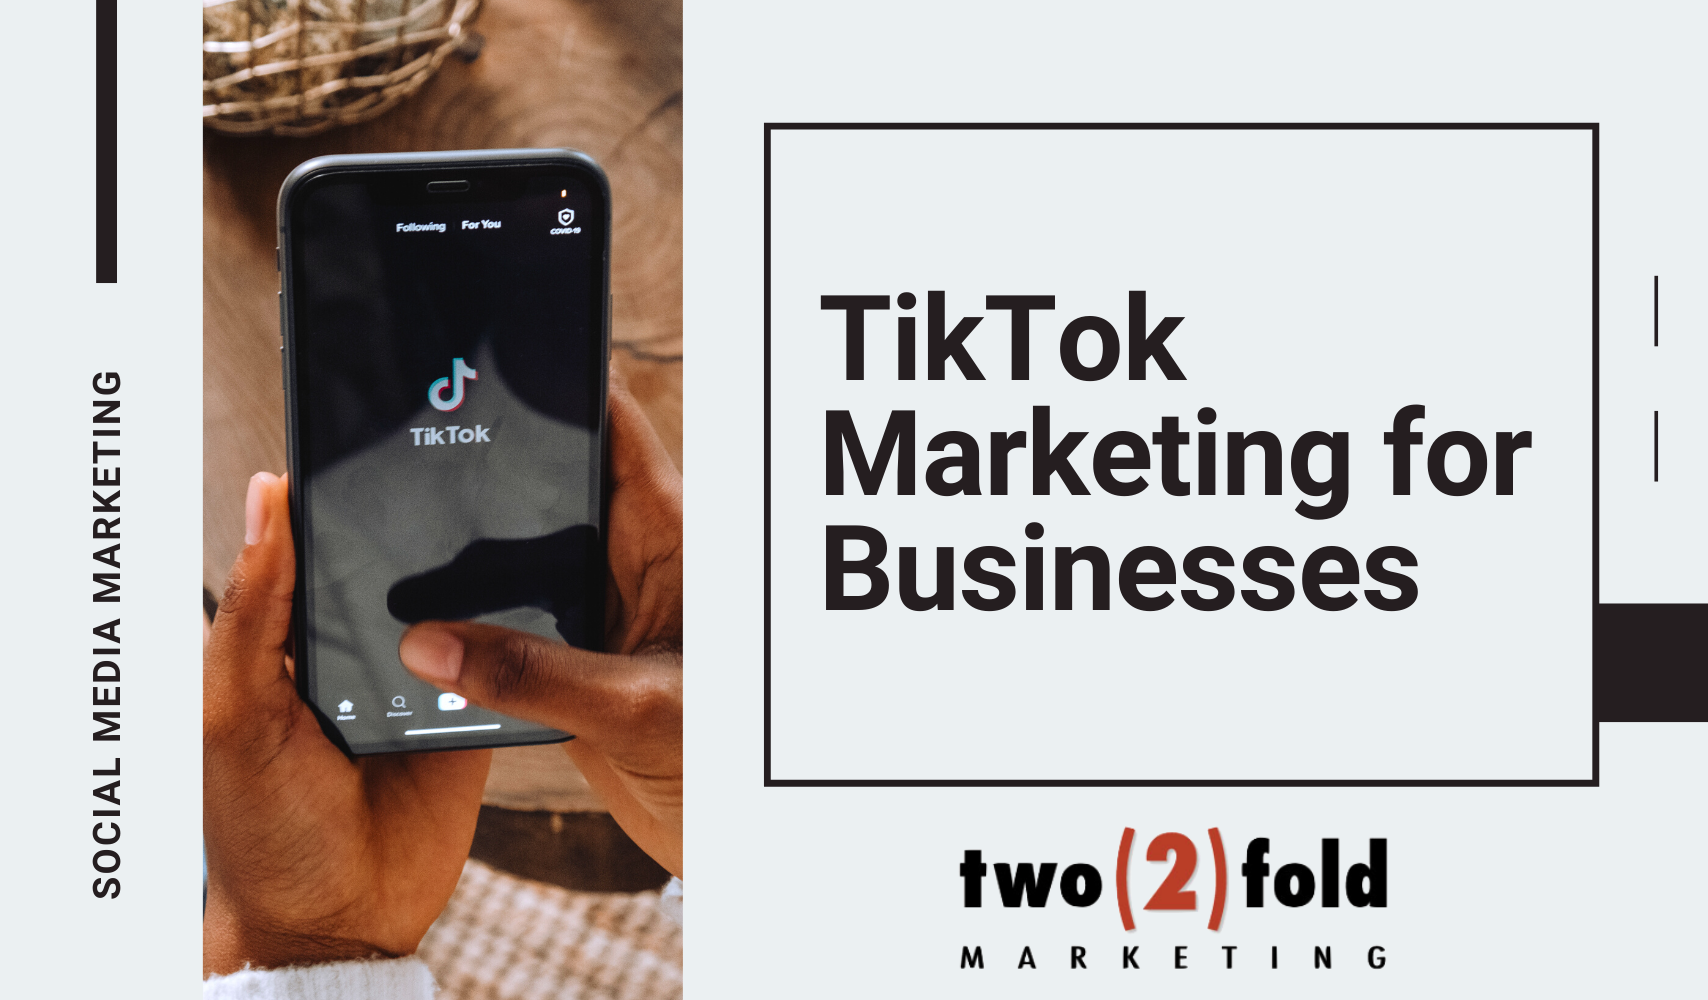 TikTok Marketing for Businesses